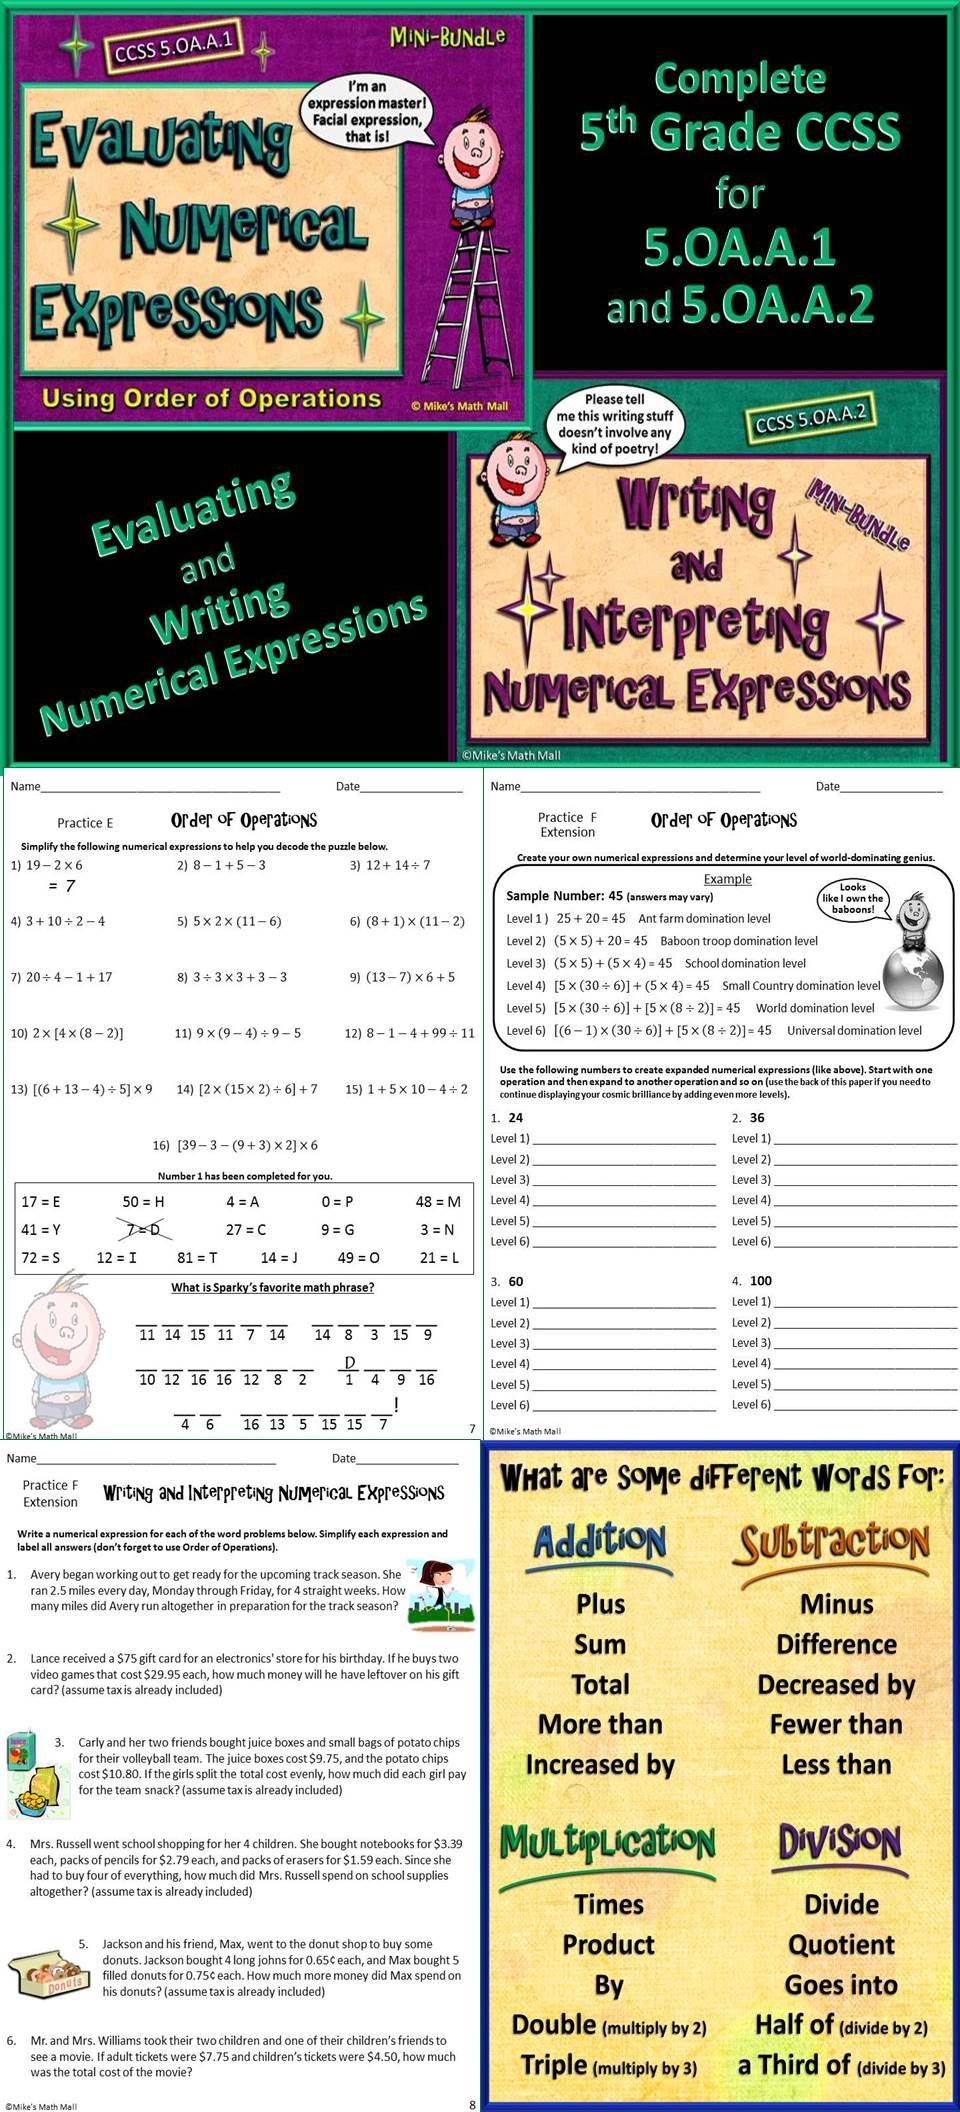 Write and Interpret Numerical Expressions - Complete 5th Grade CCSS